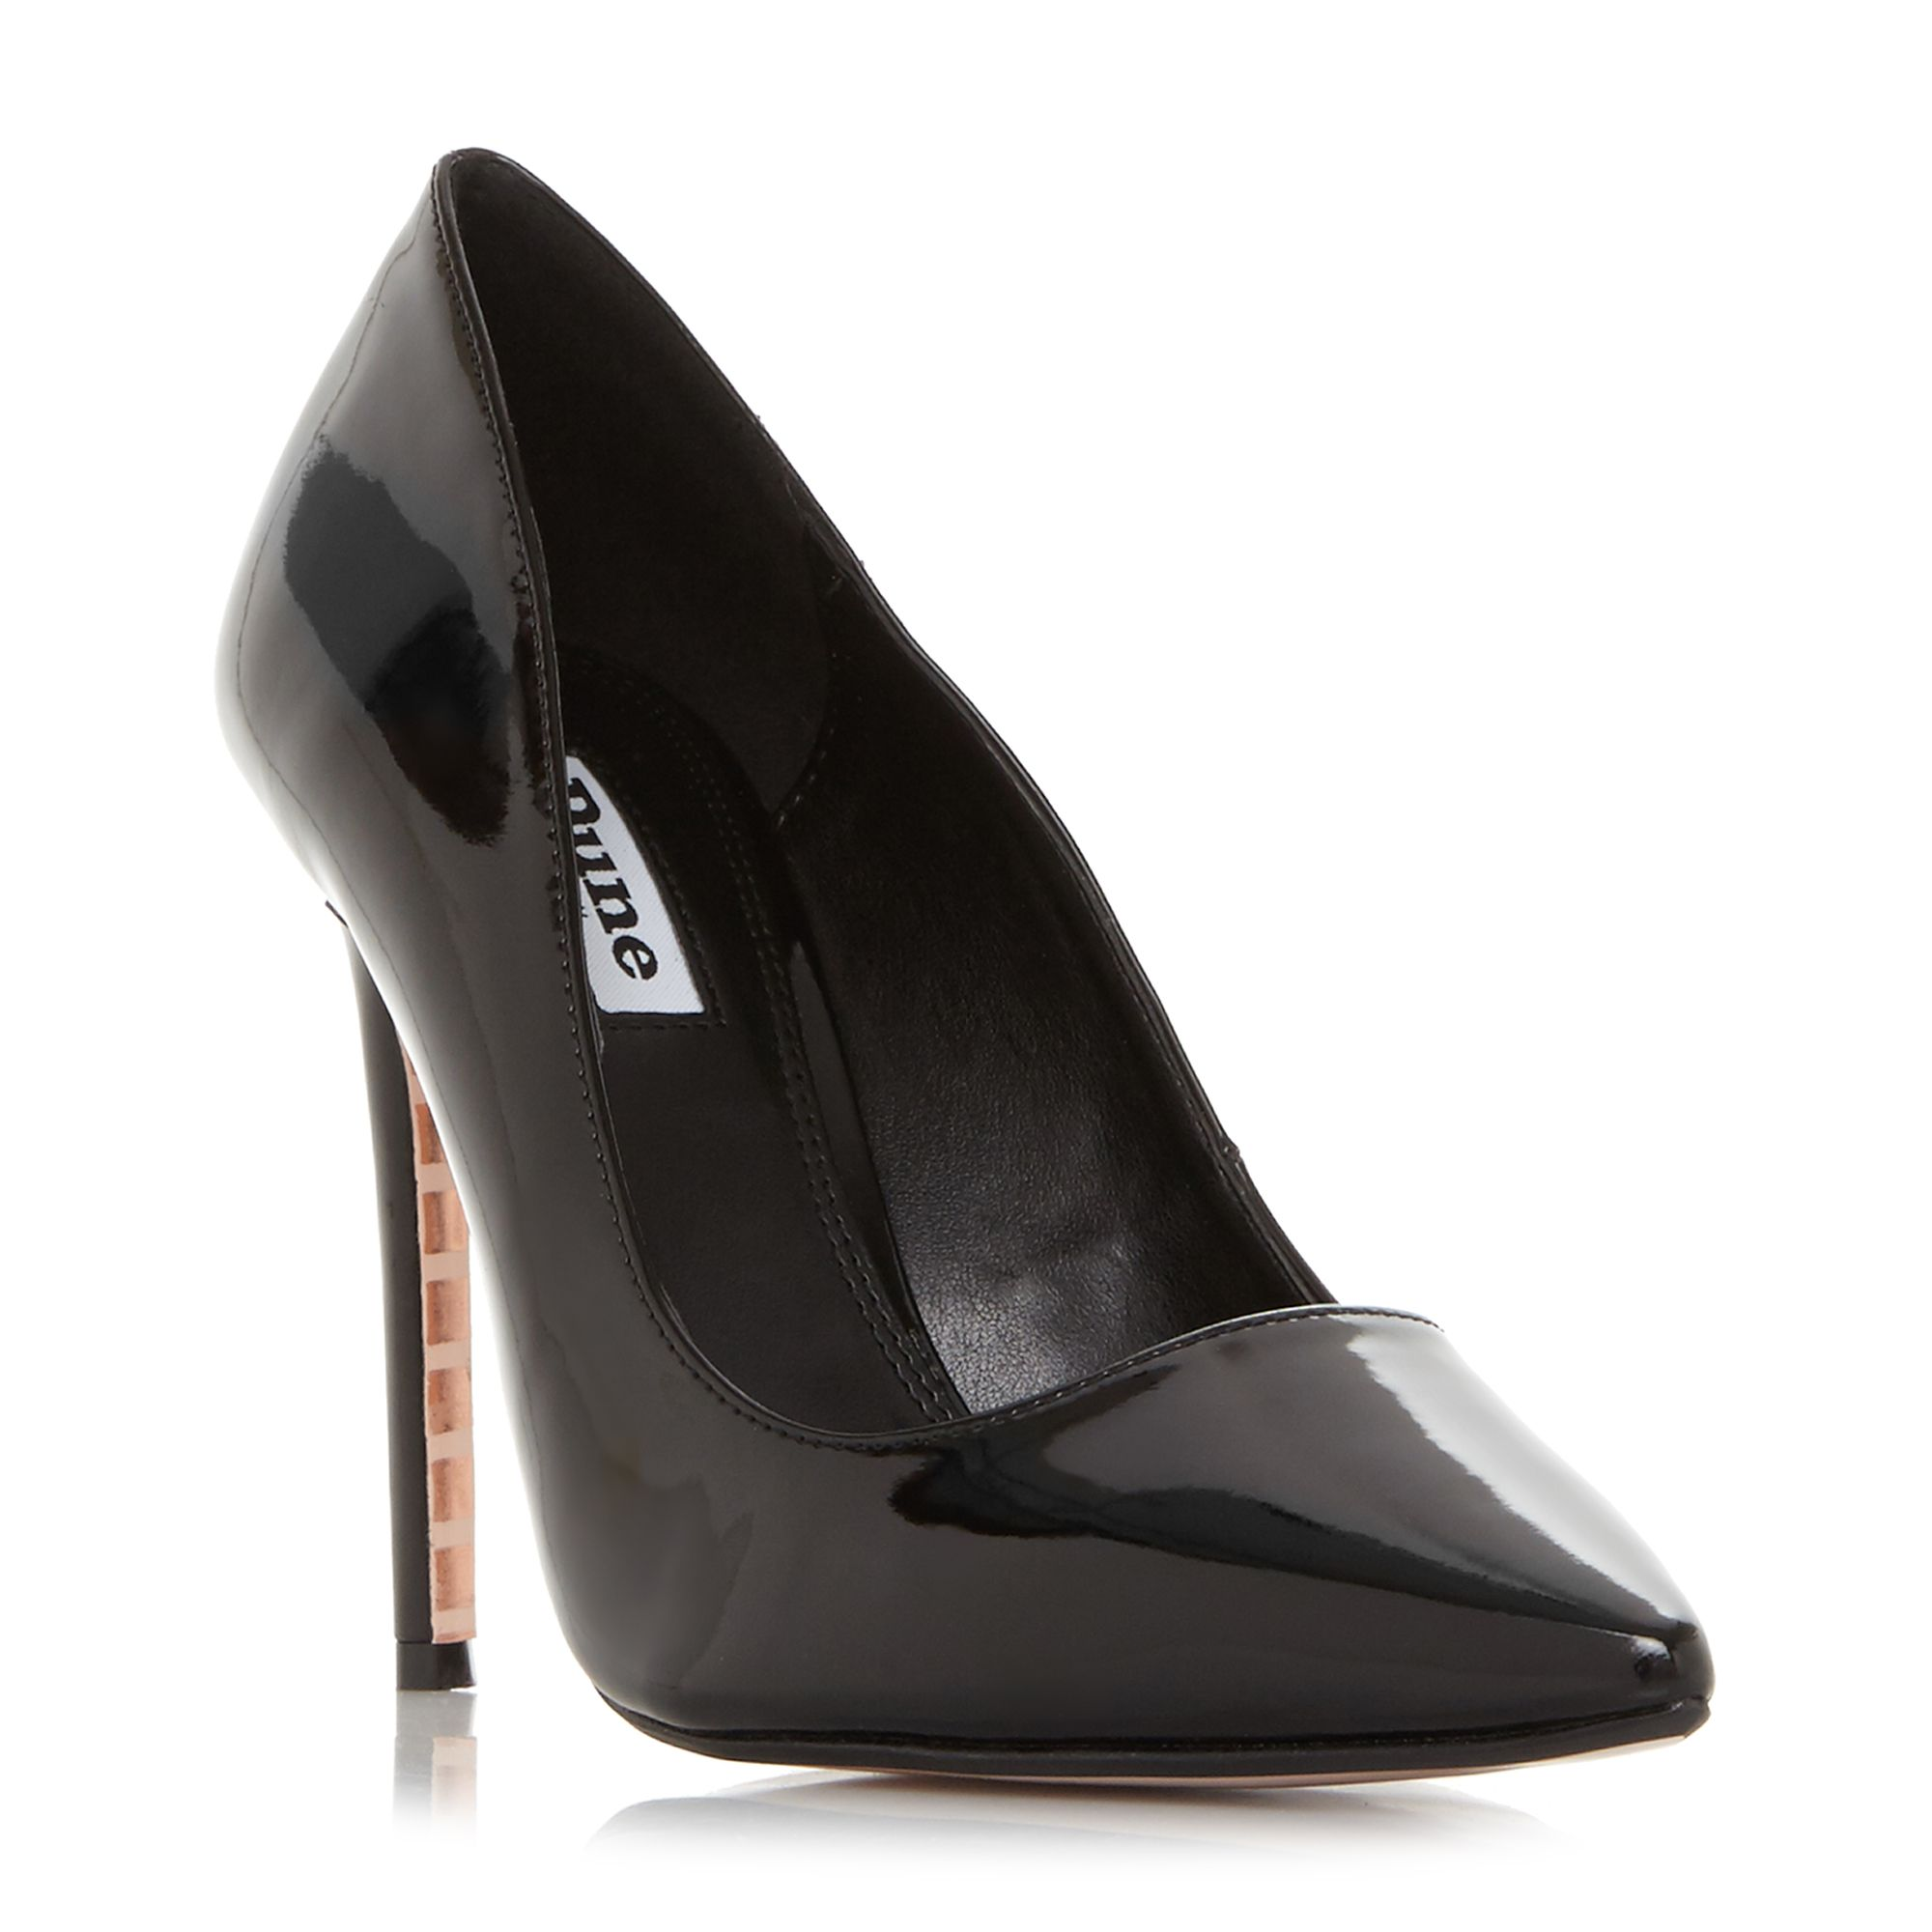 Dune Amalfie Point Toe Stiletto Court Shoes, Nearly Black